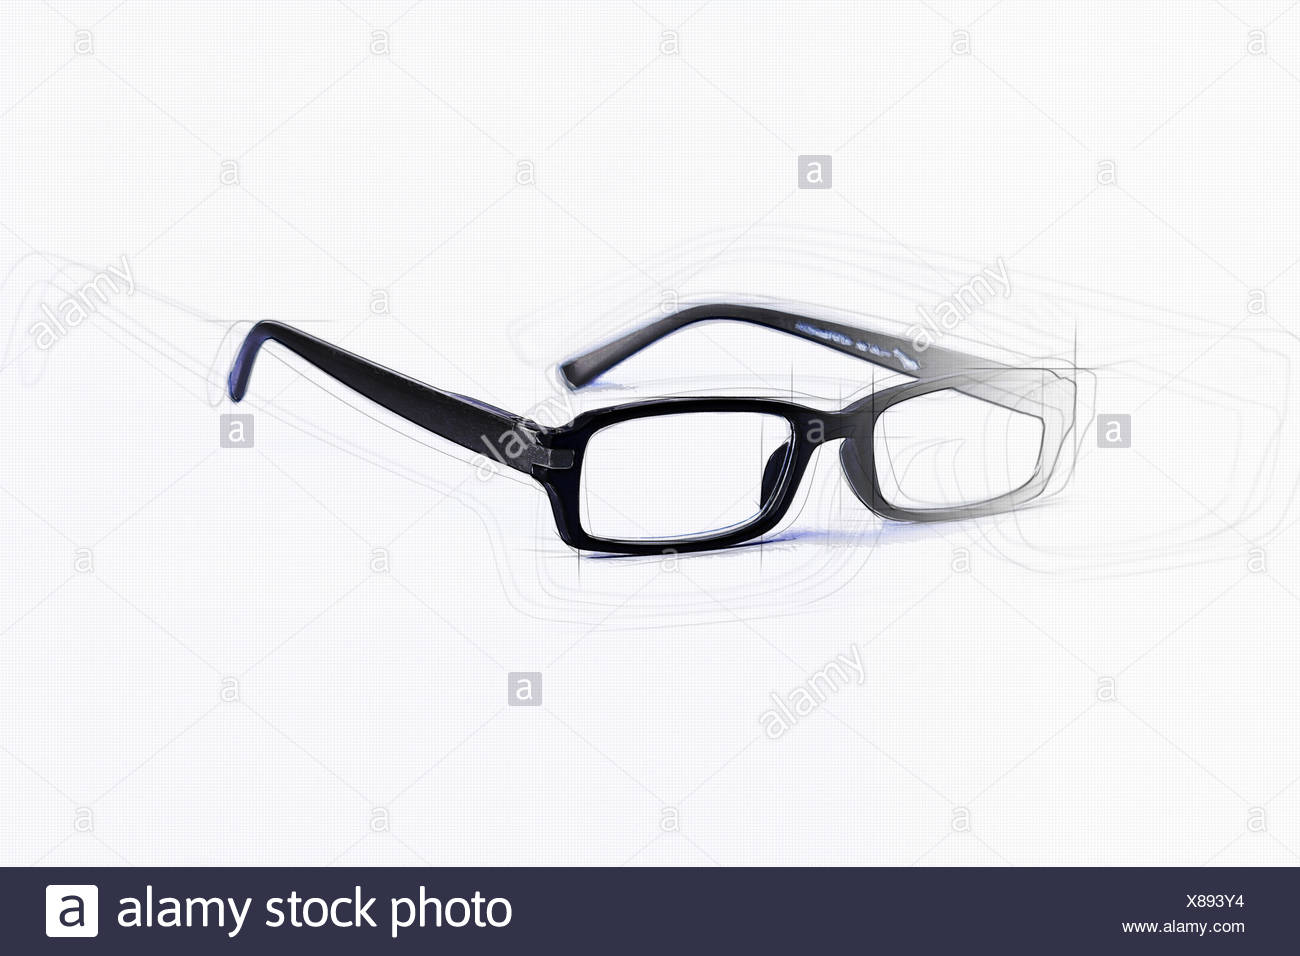 Glasses drawn in black and optional sketch - Stock Image